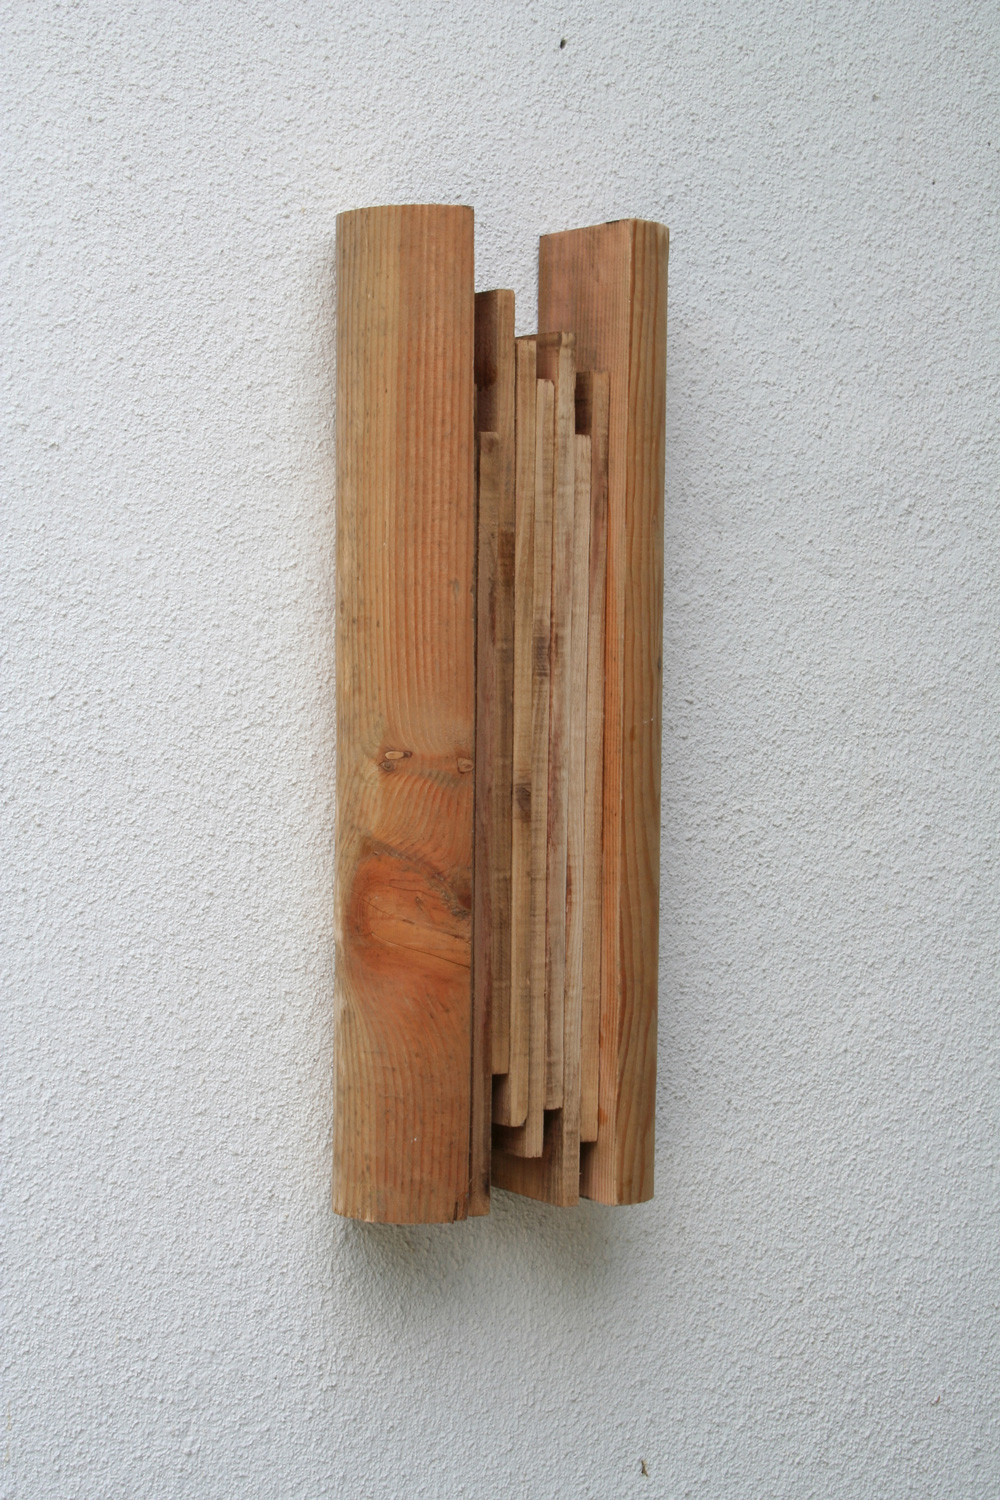 A Pair of Multiple Outlines V , 2007 復縁対 V ( Fukuentai V ) Wood 24 7/8 x 8 7/8 x 5 1/8 inches 63 x 22.5 x 13 cm